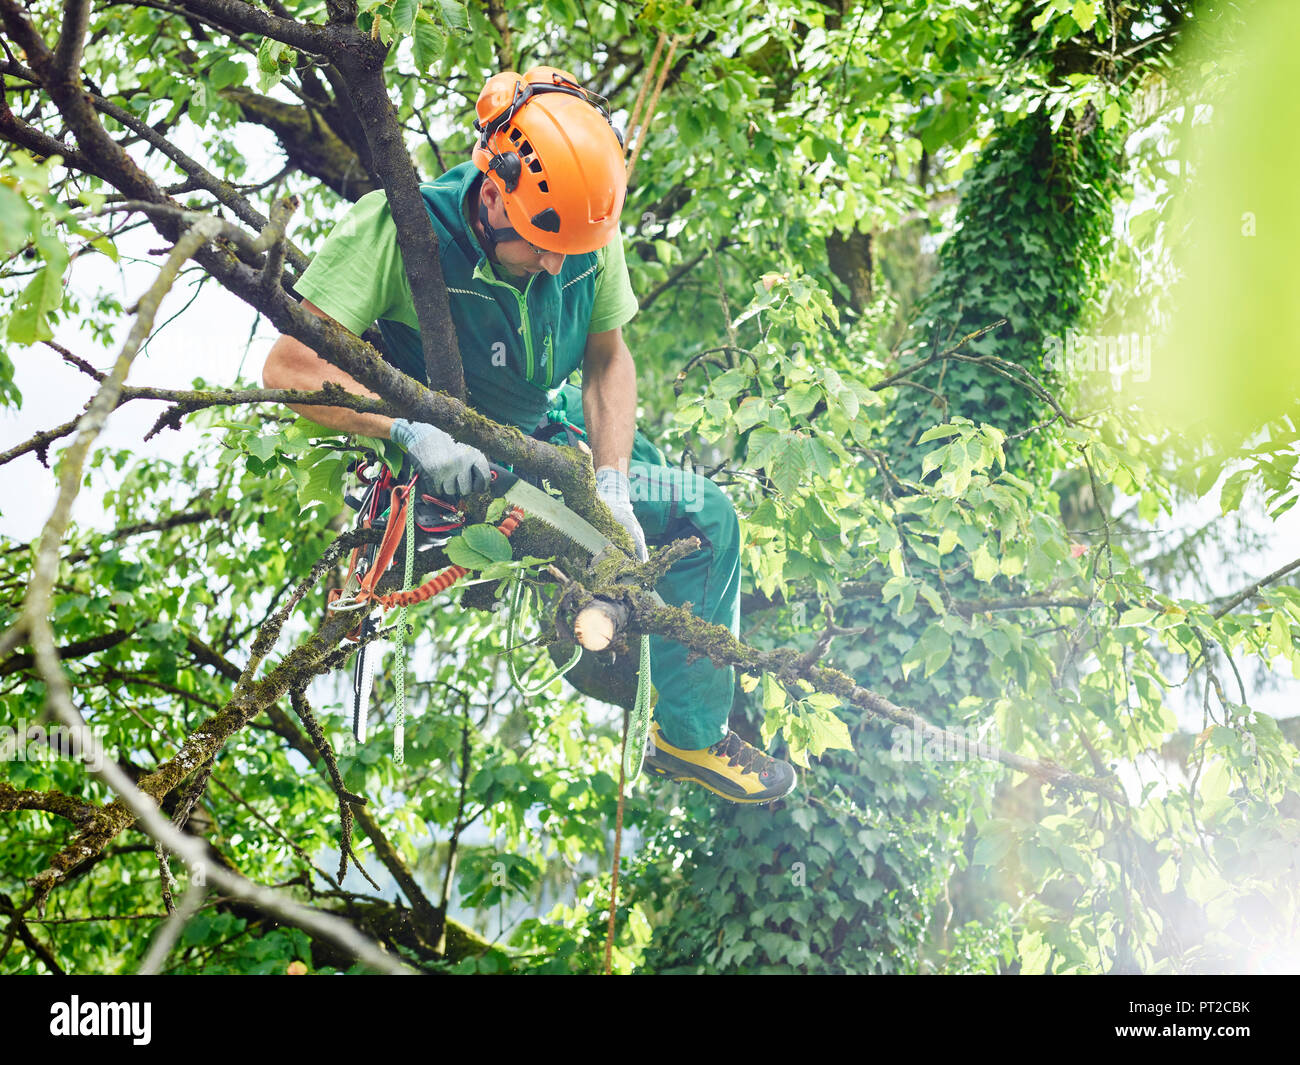 Tree Cutter Tree Cutter Pruning Of Tree Stock Photo 221329799 Alamy